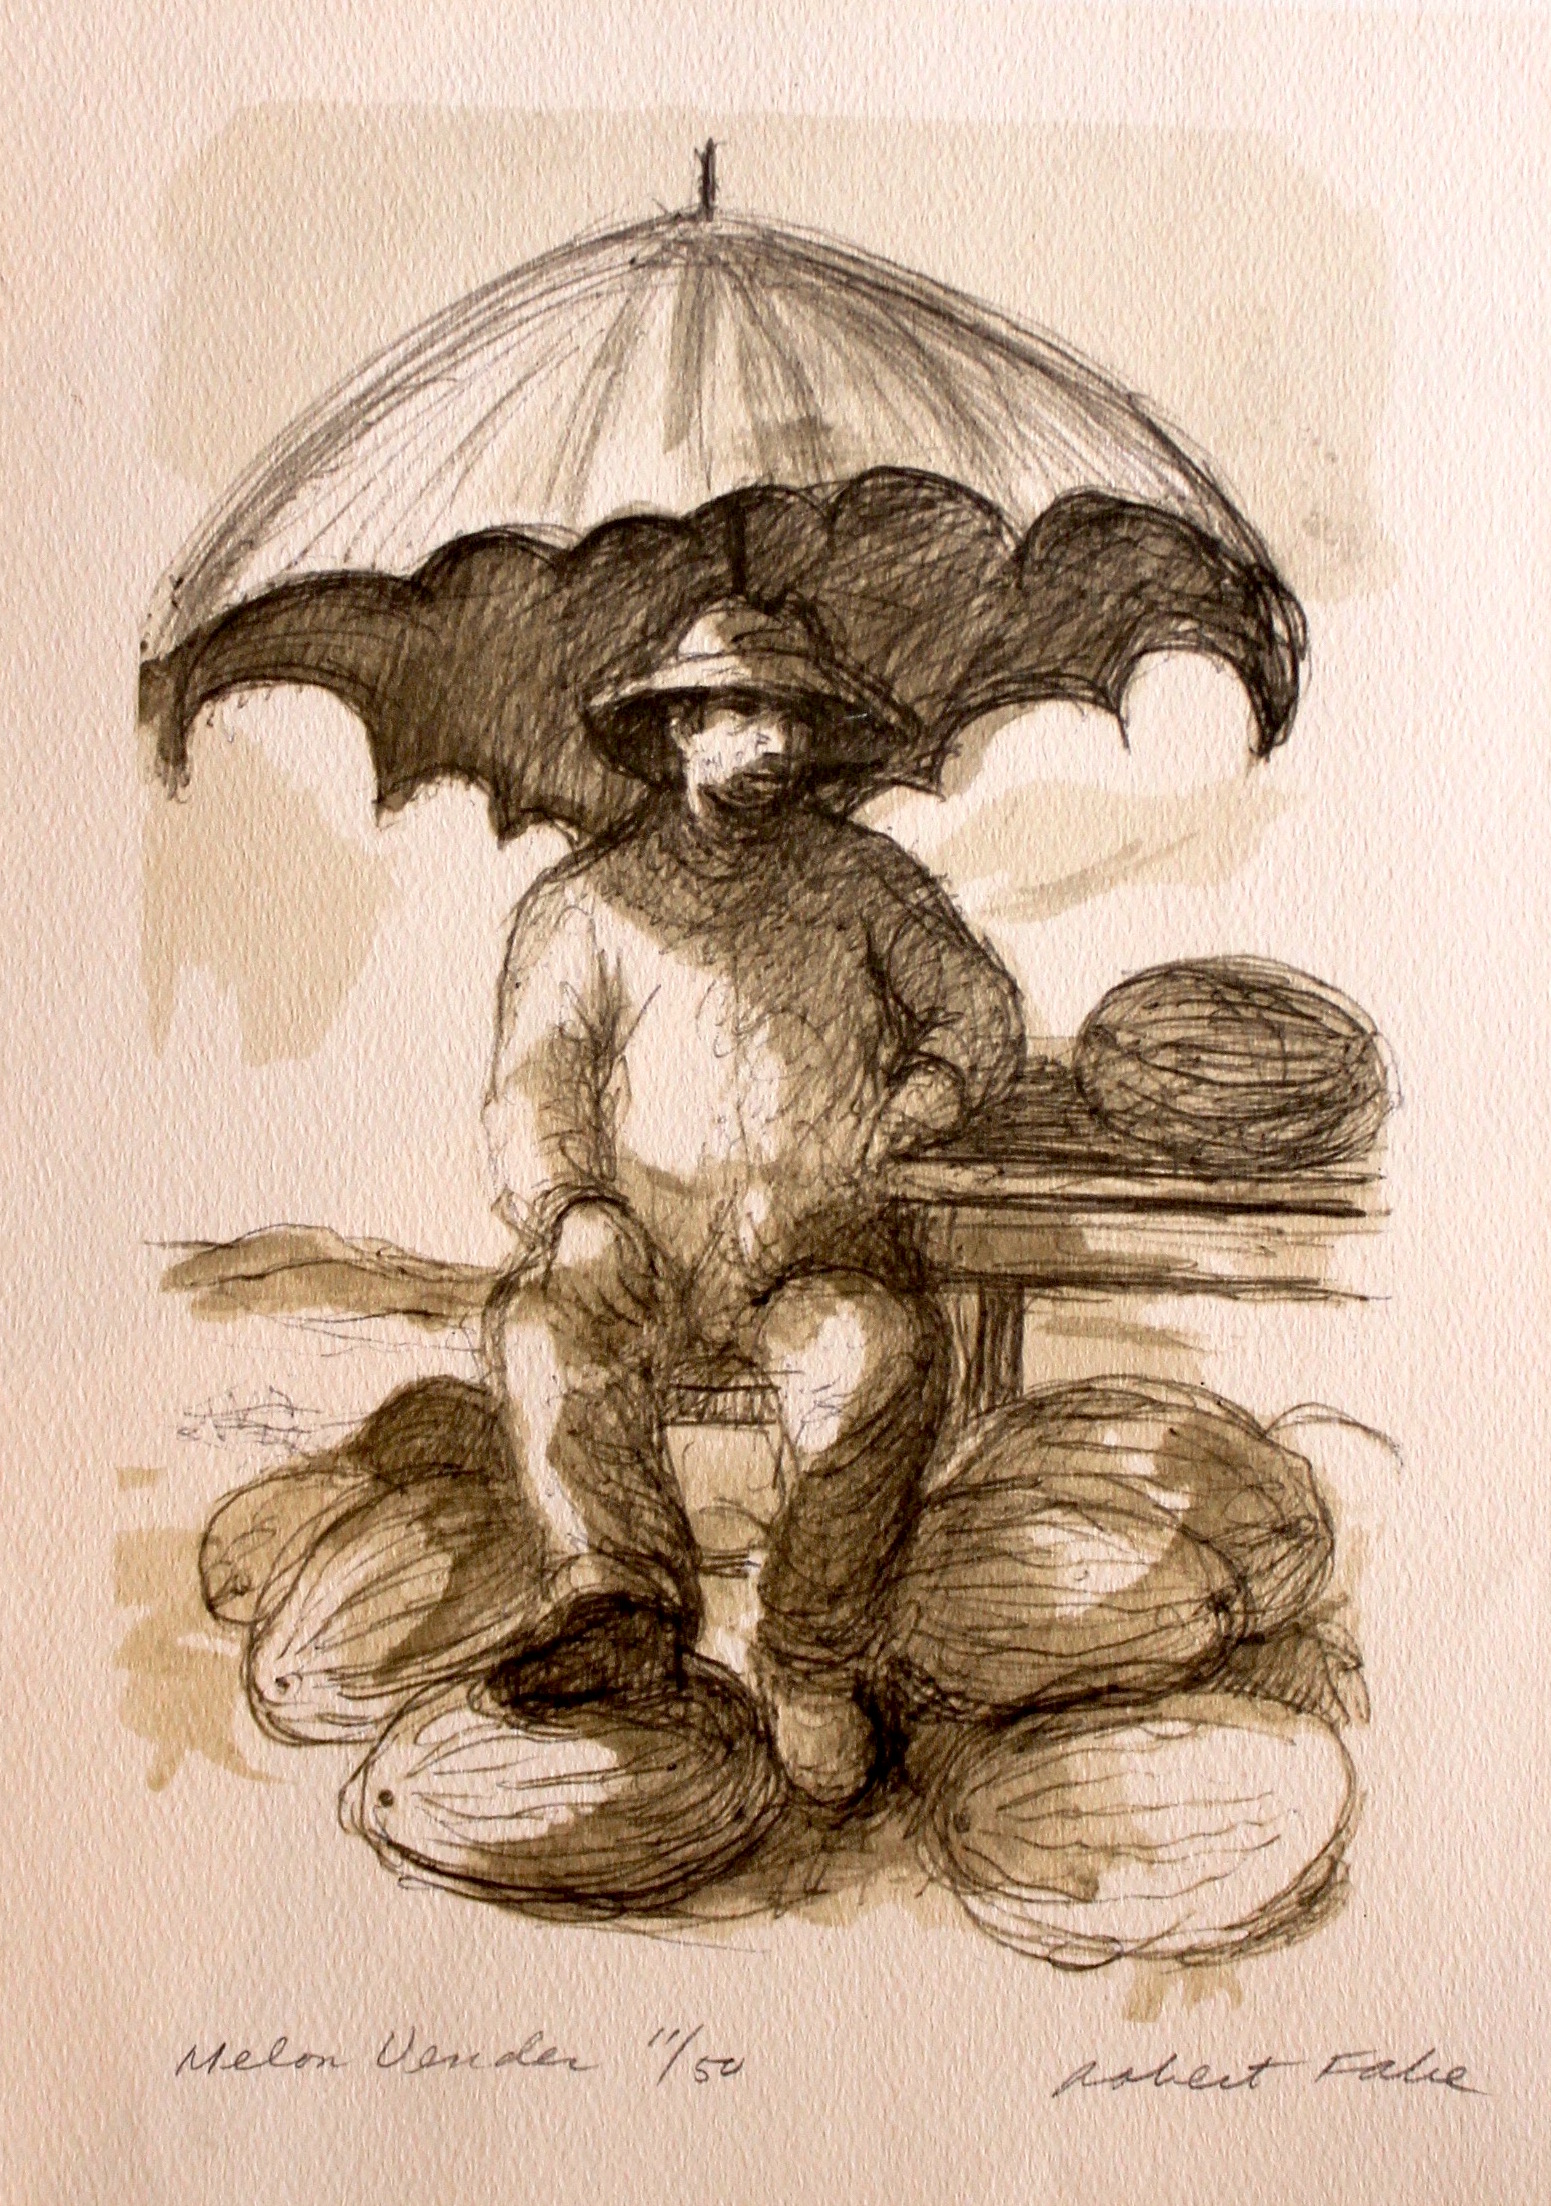 """Melon Vendor"", print ed. 11/50, 13.5x11 in"